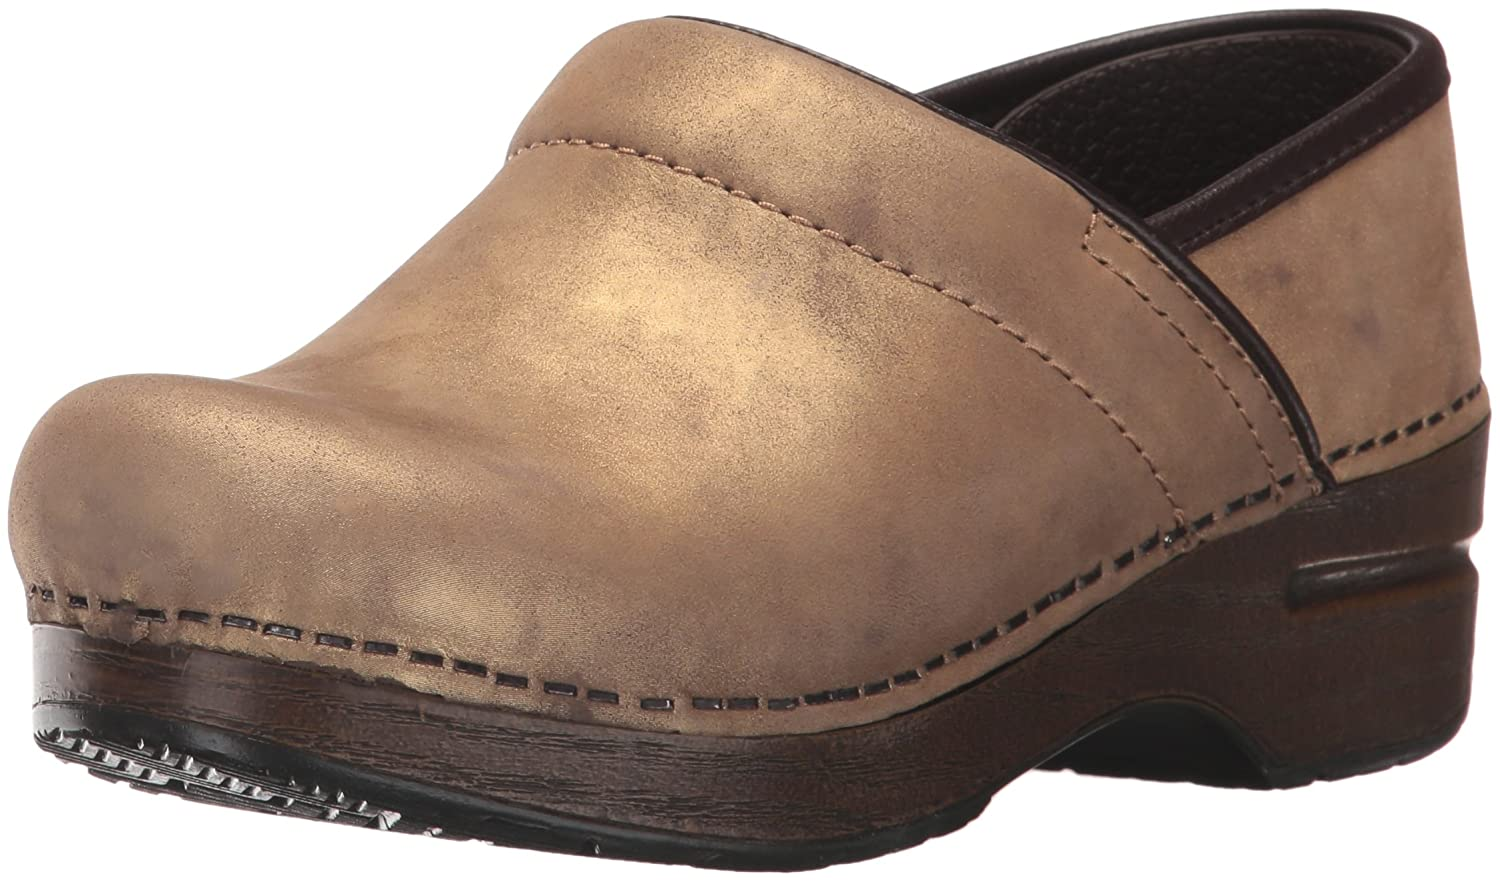 Bronze Metallic Dansko Women's Professional Clog